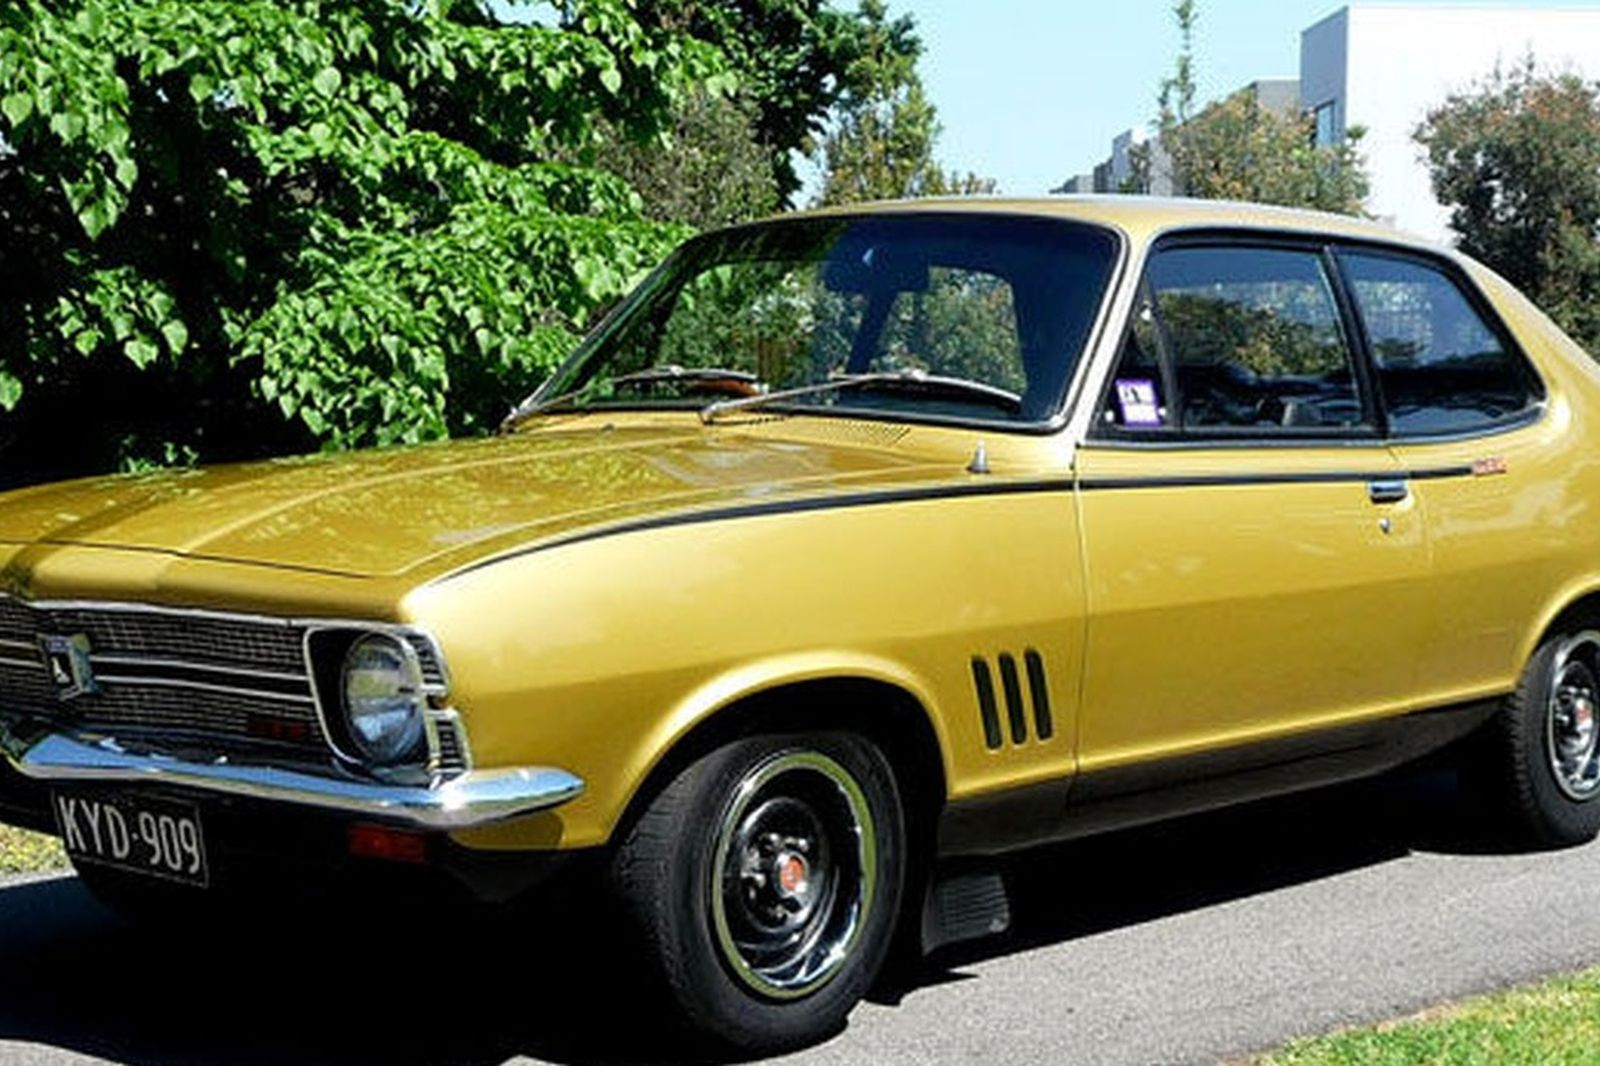 Holden Lc Torana Gtr Coupe Auctions Lot 21 Shannons